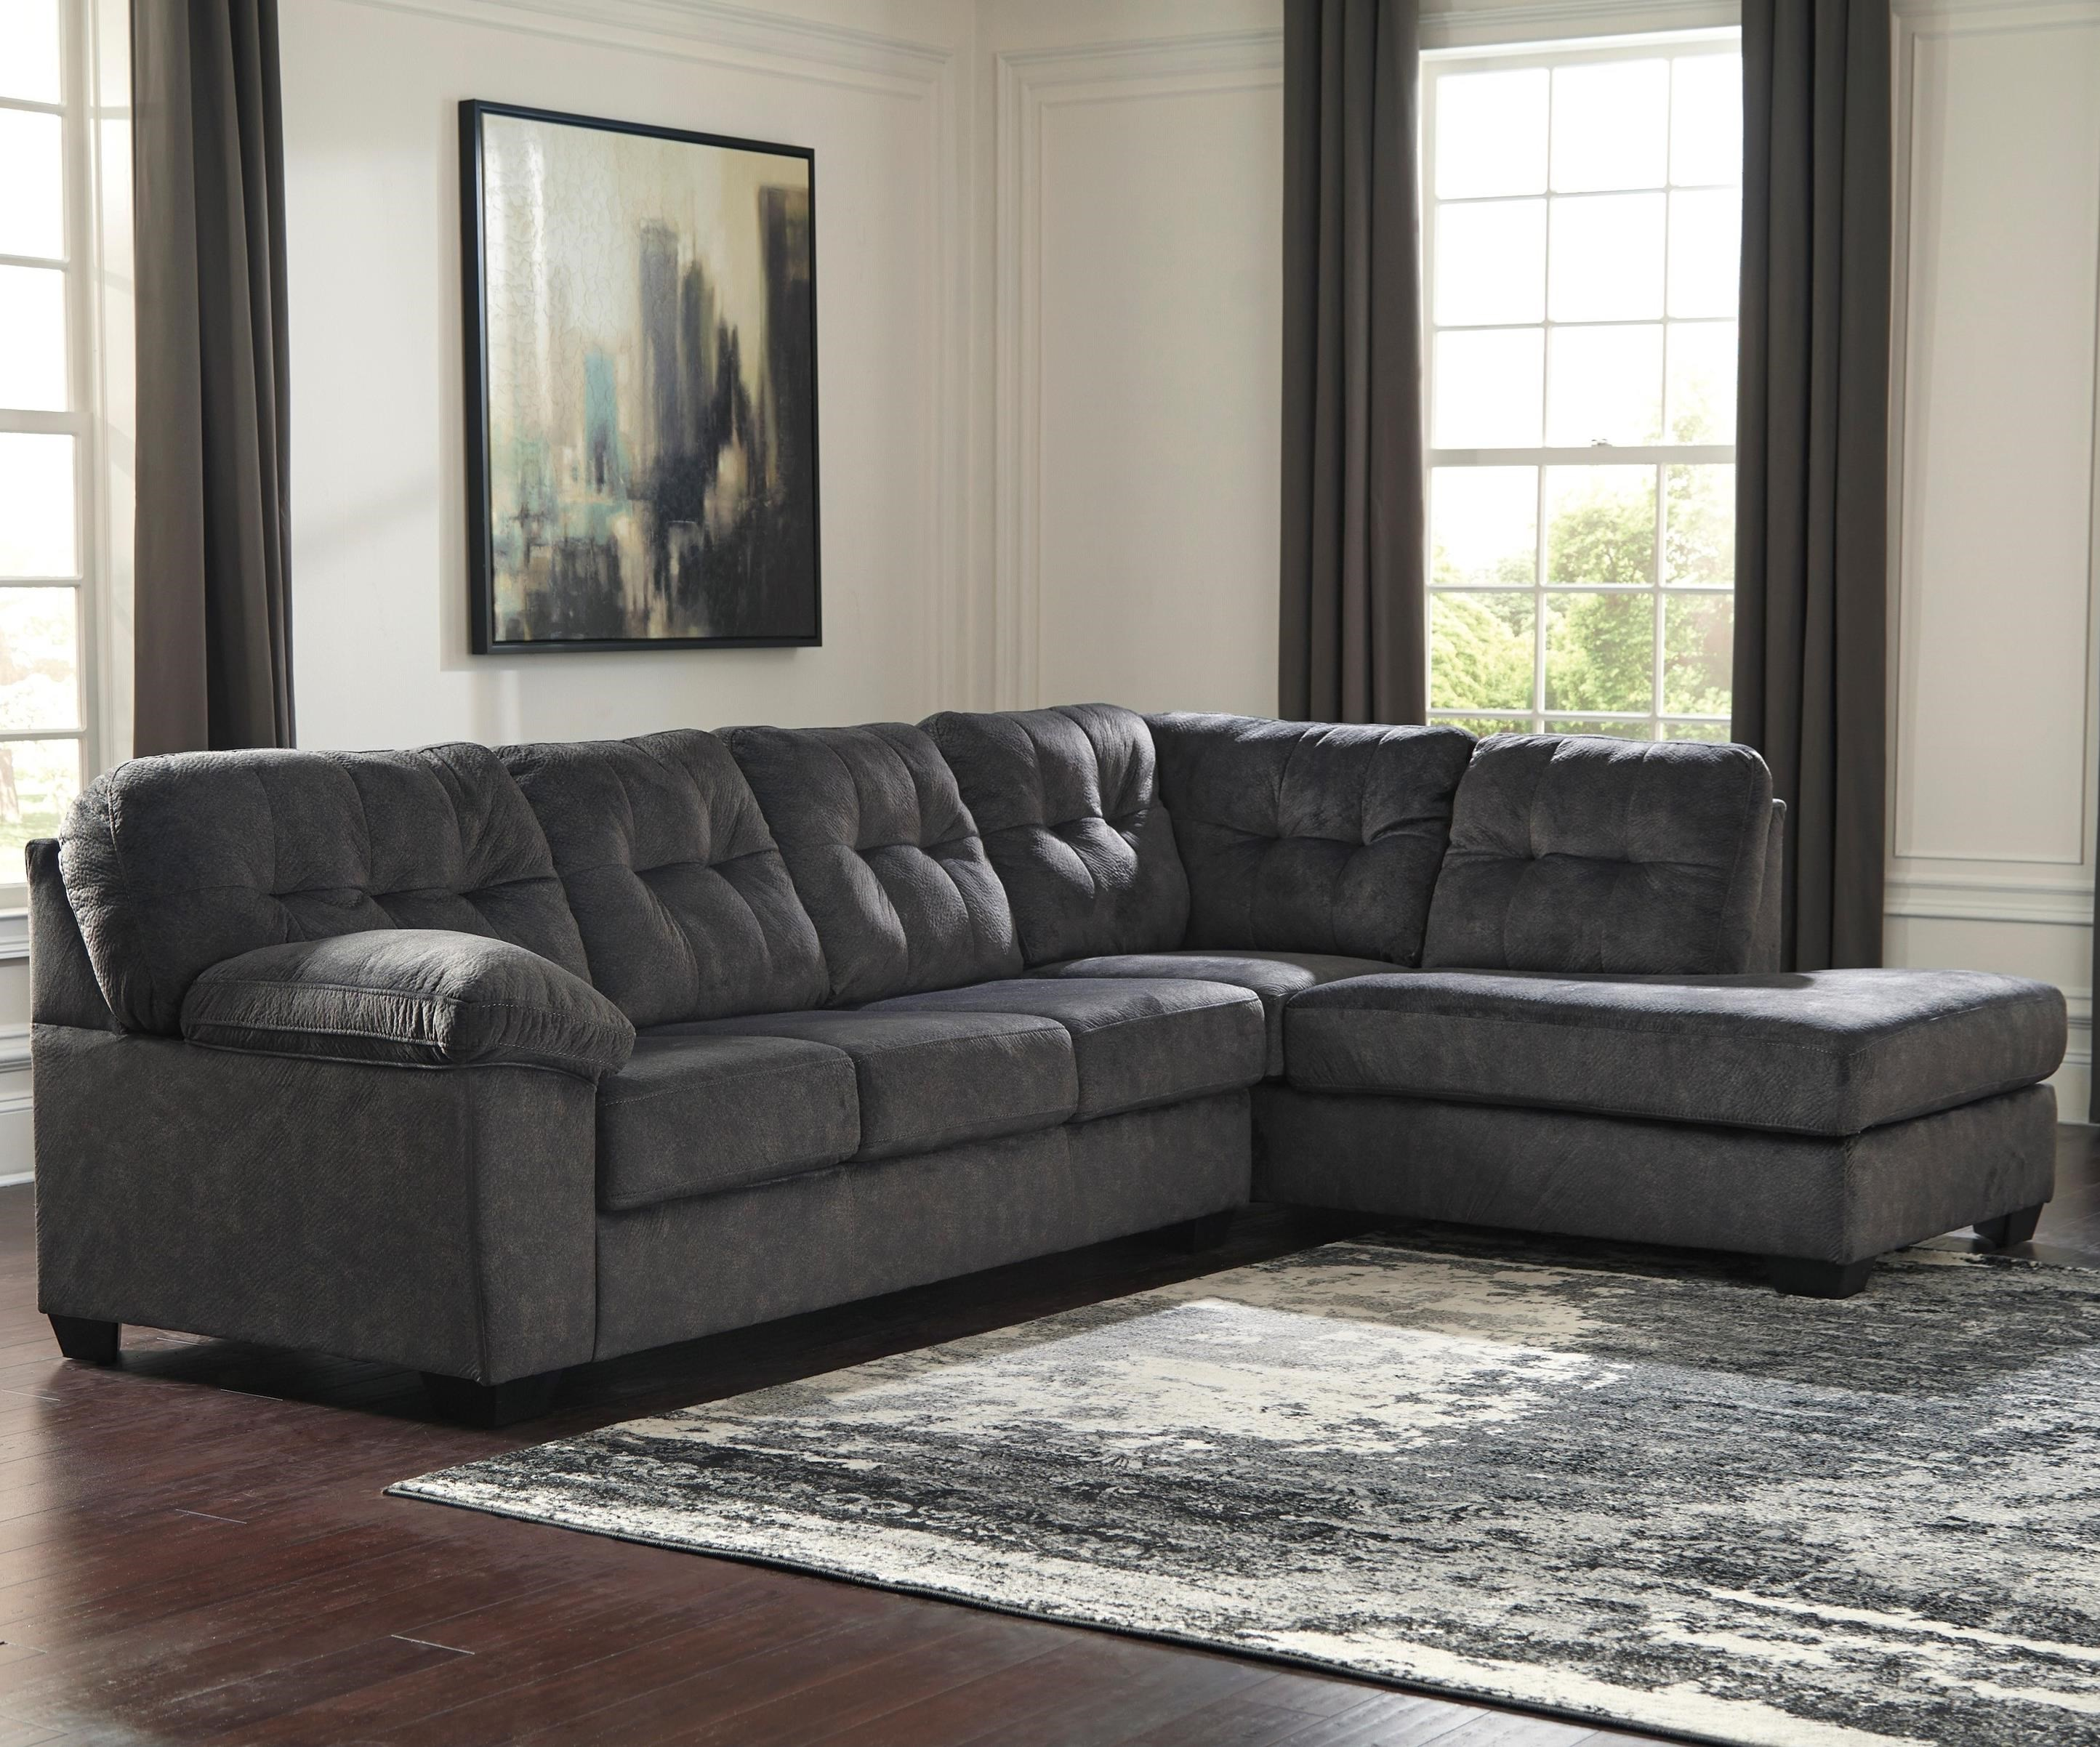 Accrington Sectional with Right Chaise by Signature Design by Ashley at Catalog Outlet